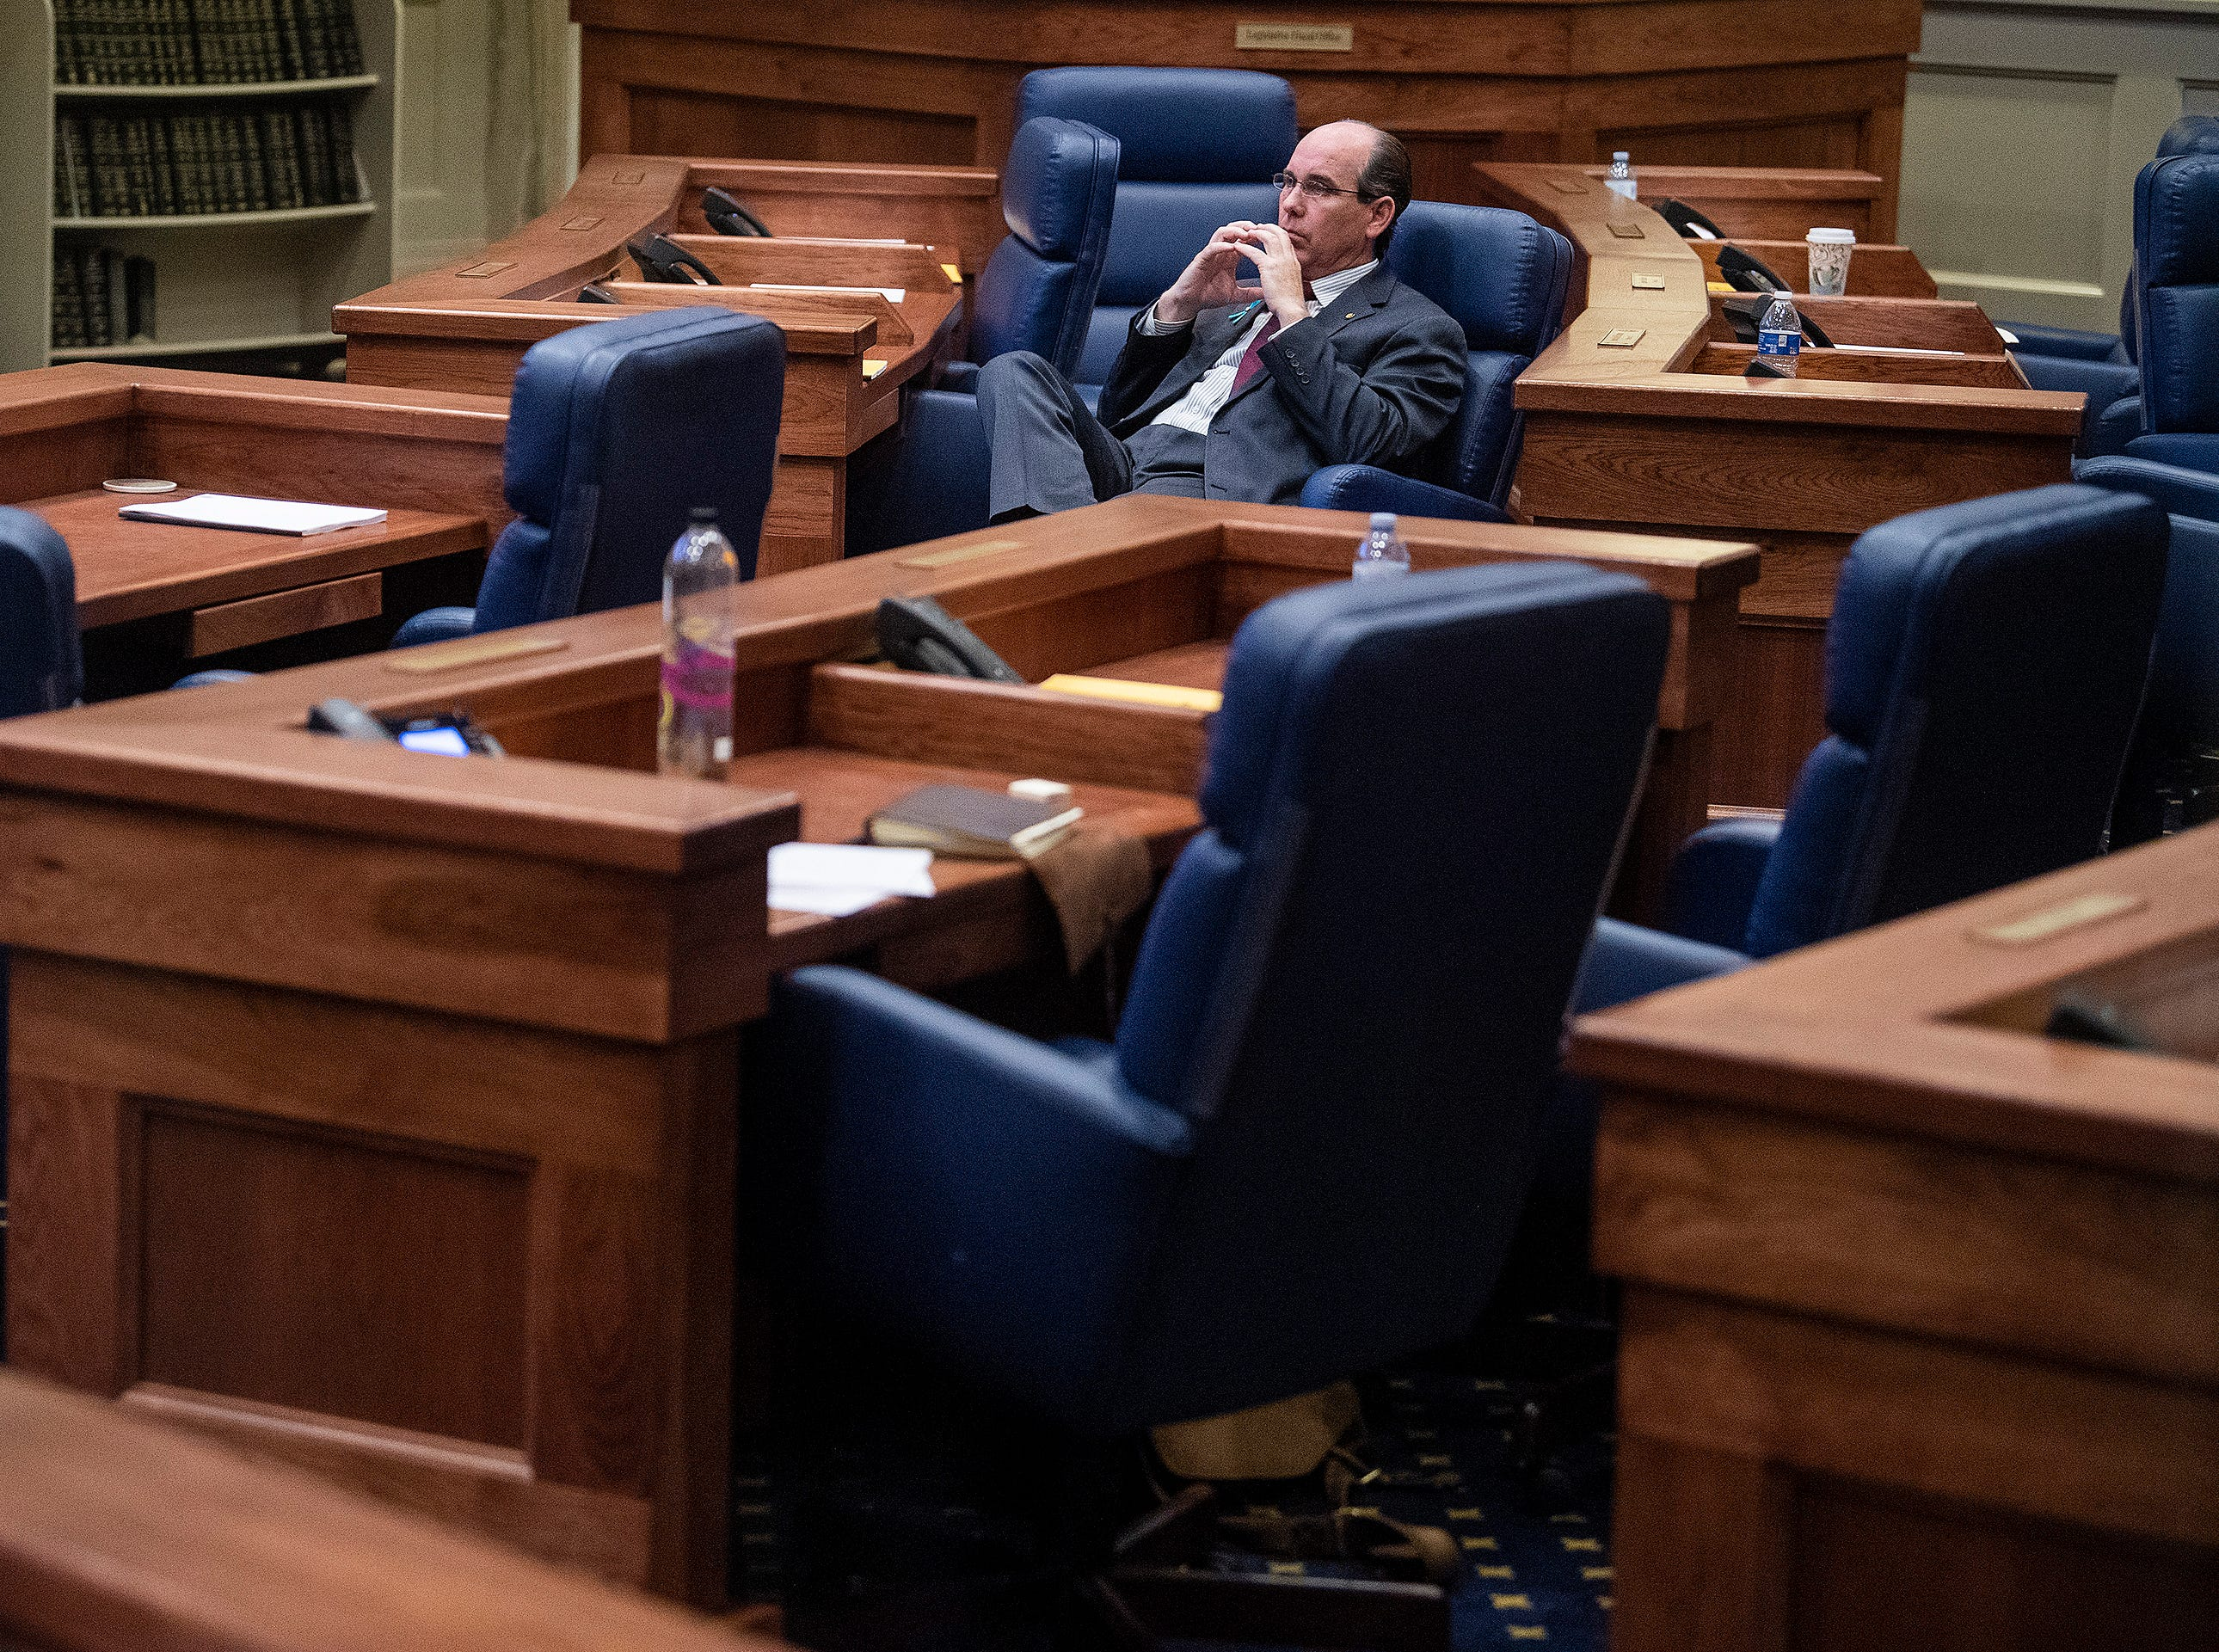 Sen Clyde Chambliss sits alone during debate on HB314, the near-total ban on abortion bill, in the senate chamber in the Alabama Statehouse in Montgomery, Ala., on Tuesday May 14, 2019.